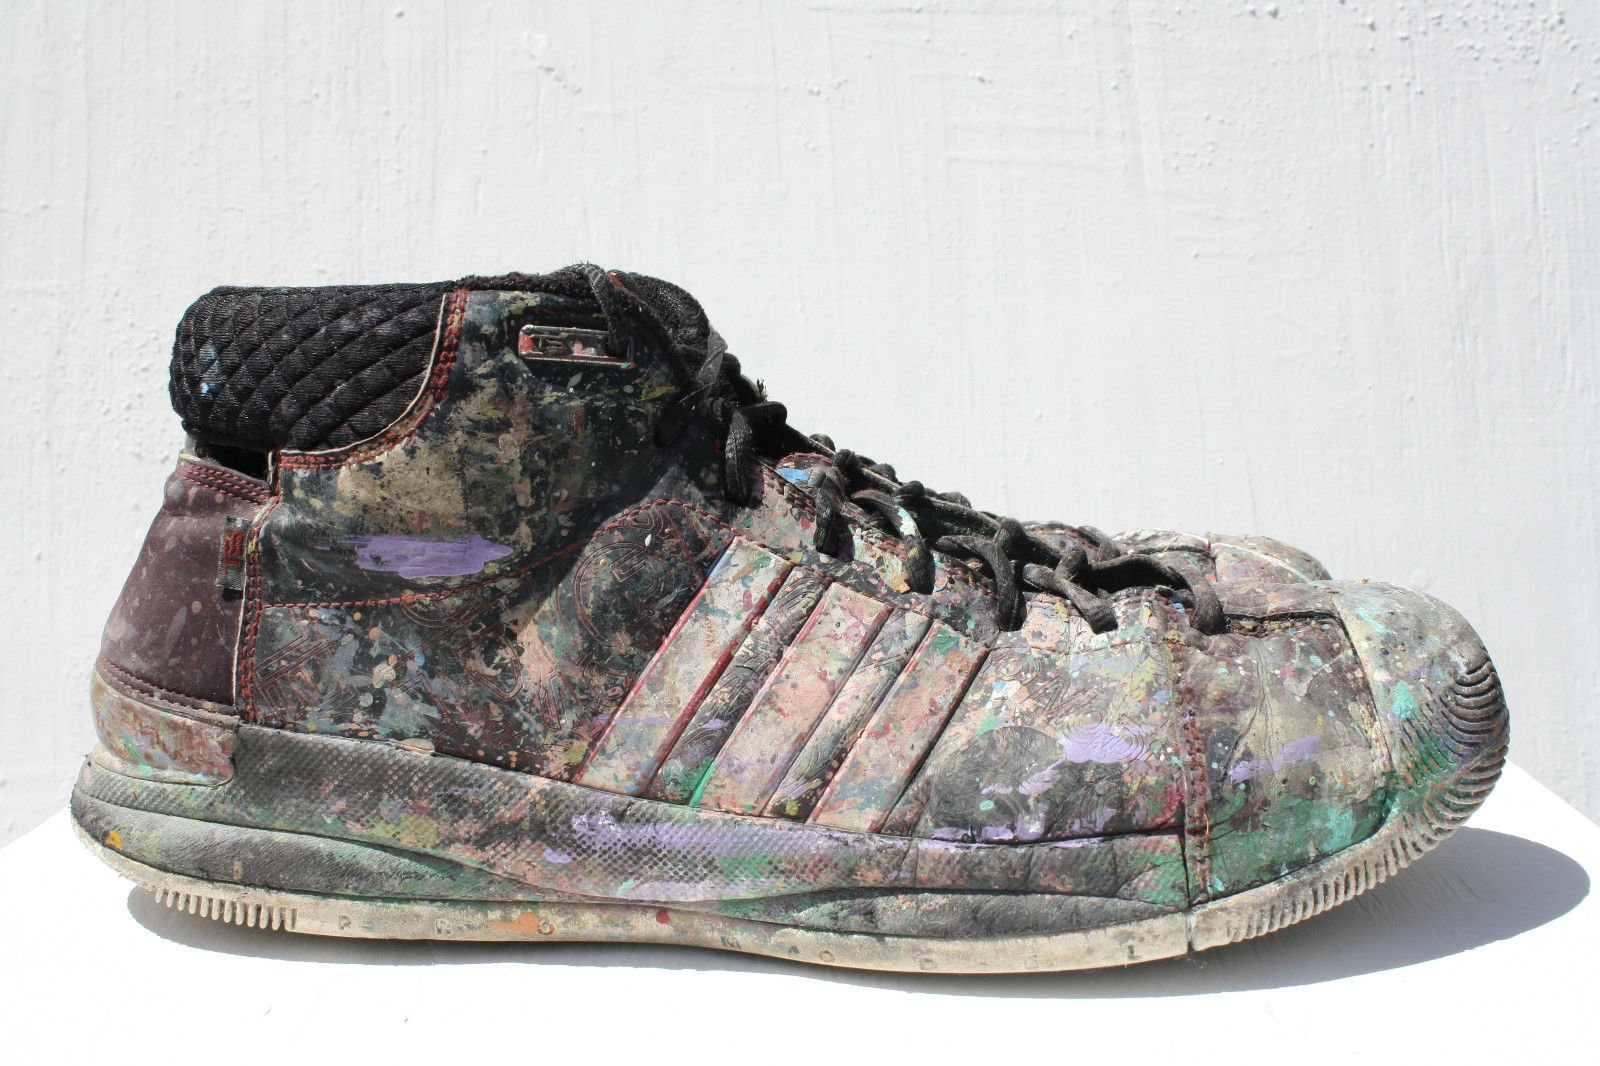 CHRIS RIGGS CONCEPTUAL ART DADA MODERN SCULPTURE SNEAKERS ASSEMBLAGE ADIDAS POP SIZE 13